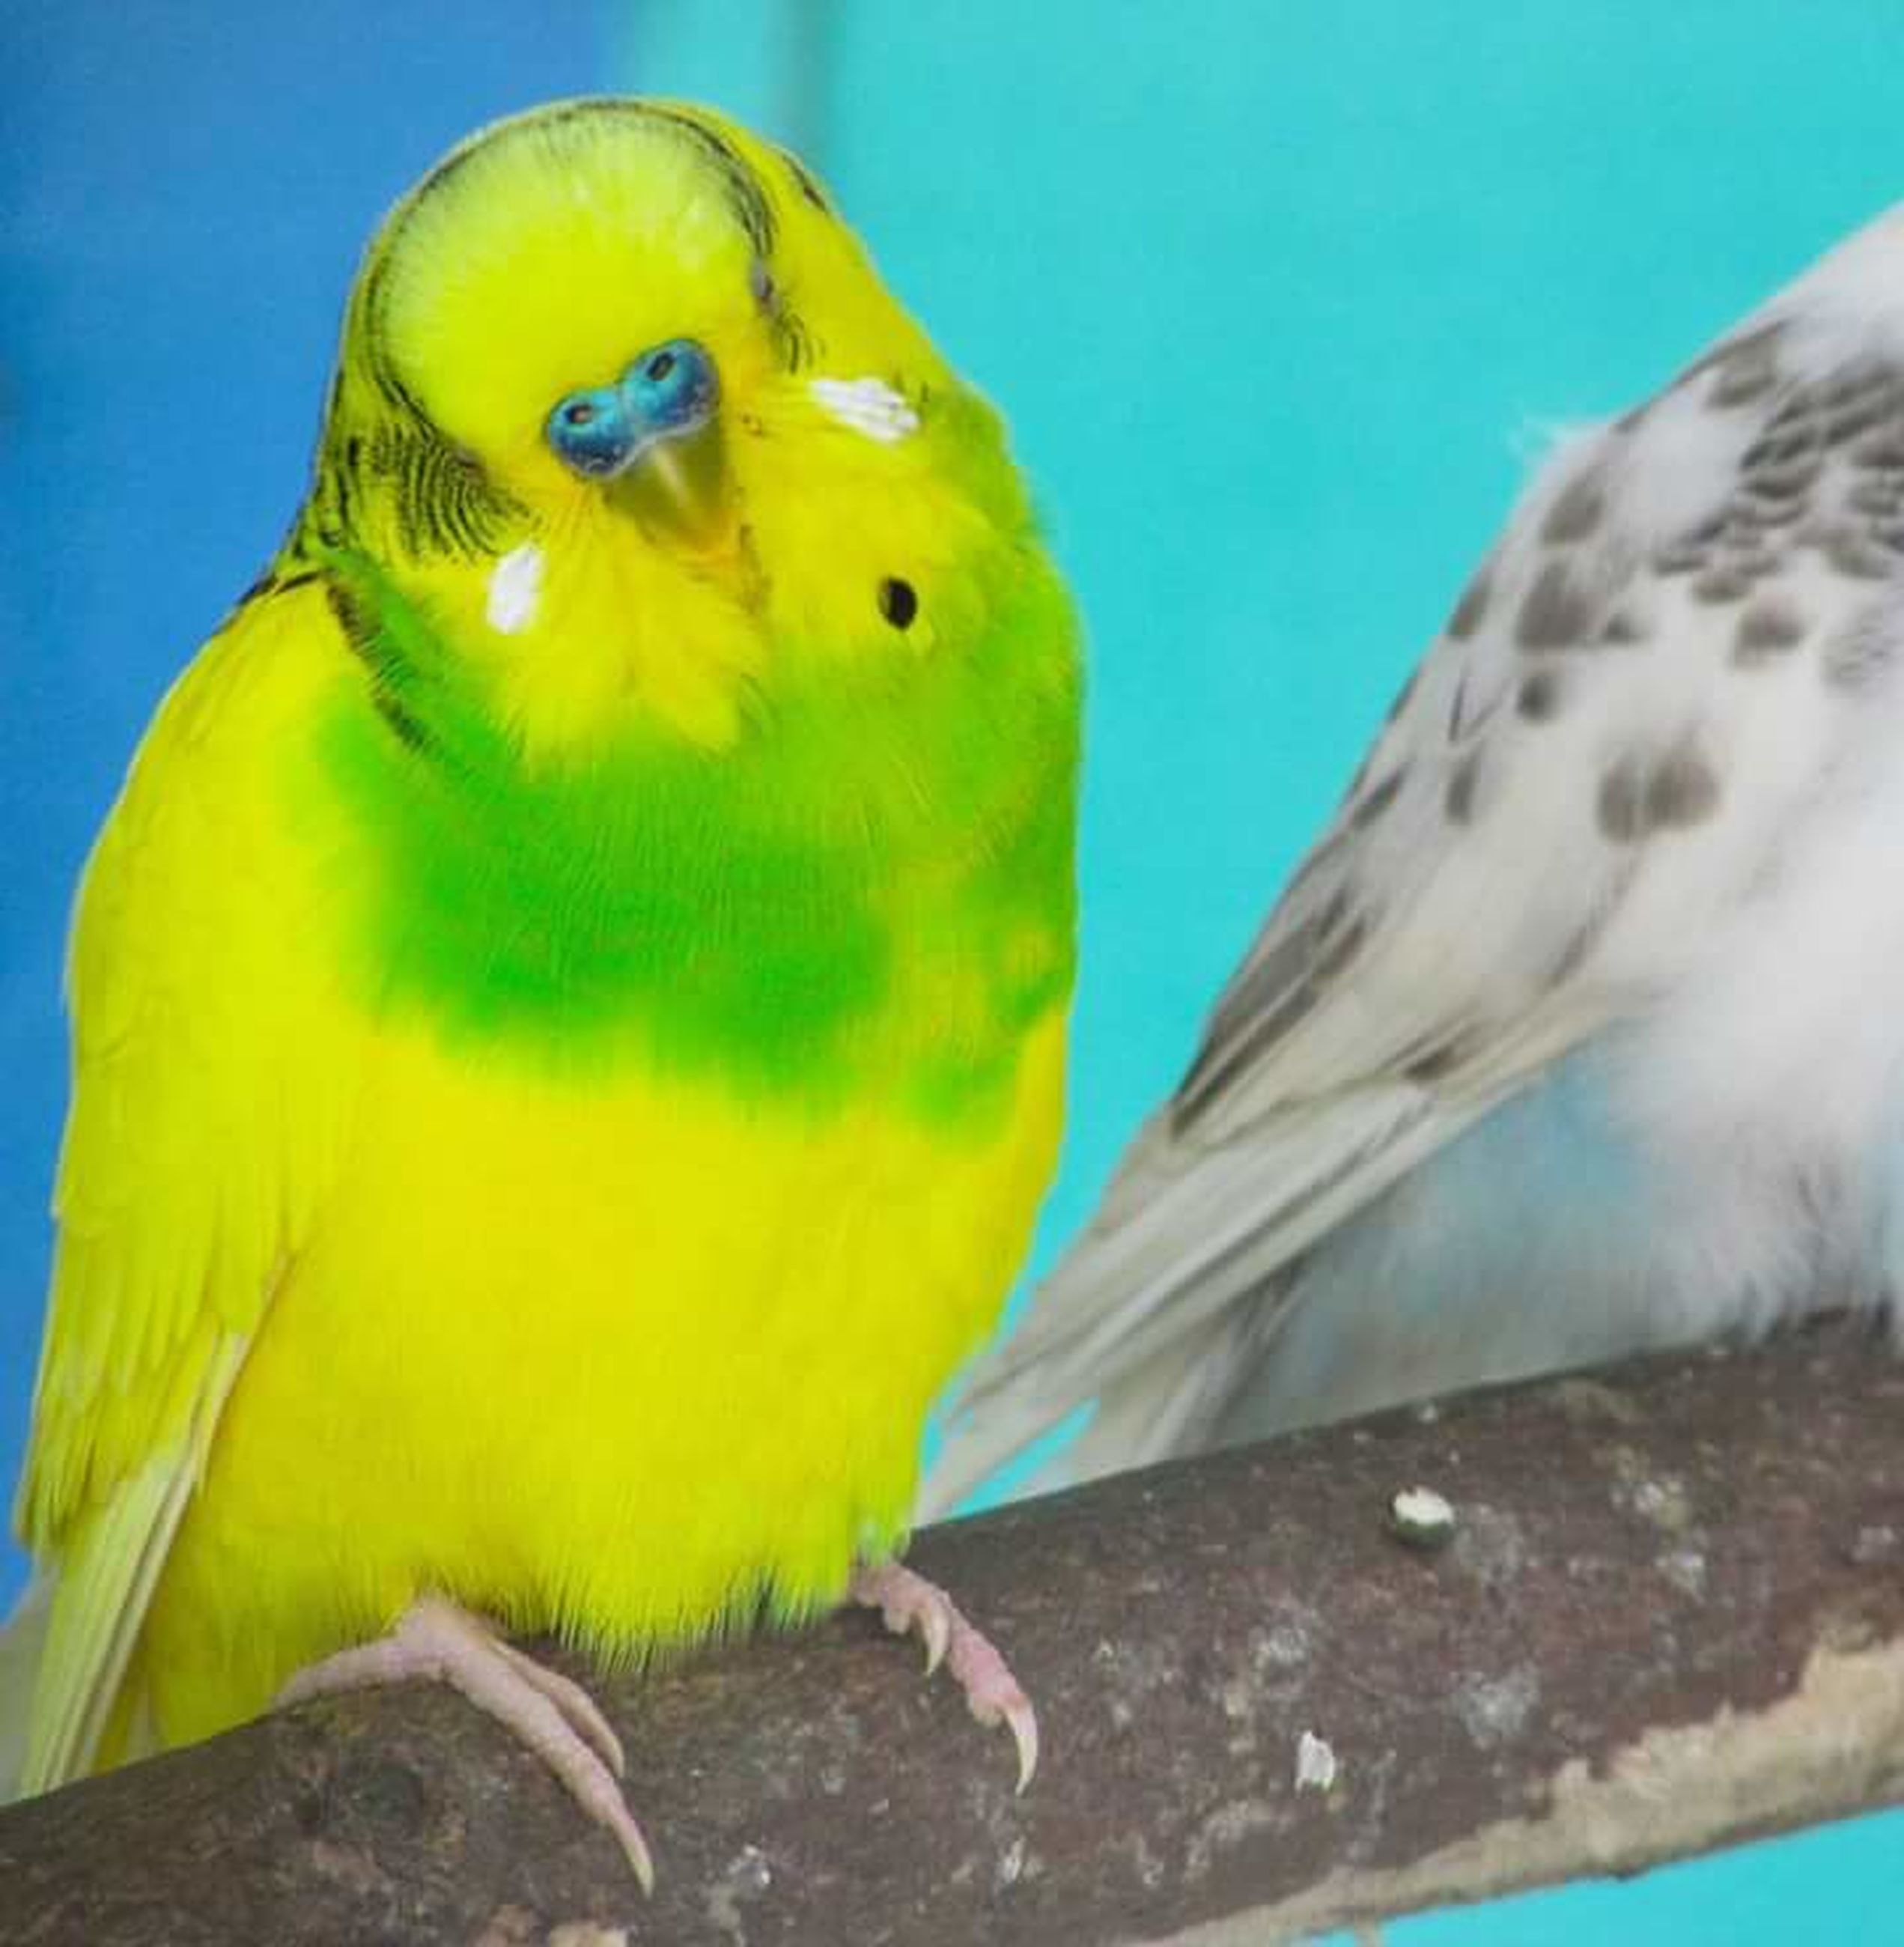 budgerigar, animal themes, yellow, parakeet, bird, close-up, parrot, perching, one animal, animal wildlife, animals in the wild, nature, beauty in nature, no people, outdoors, day